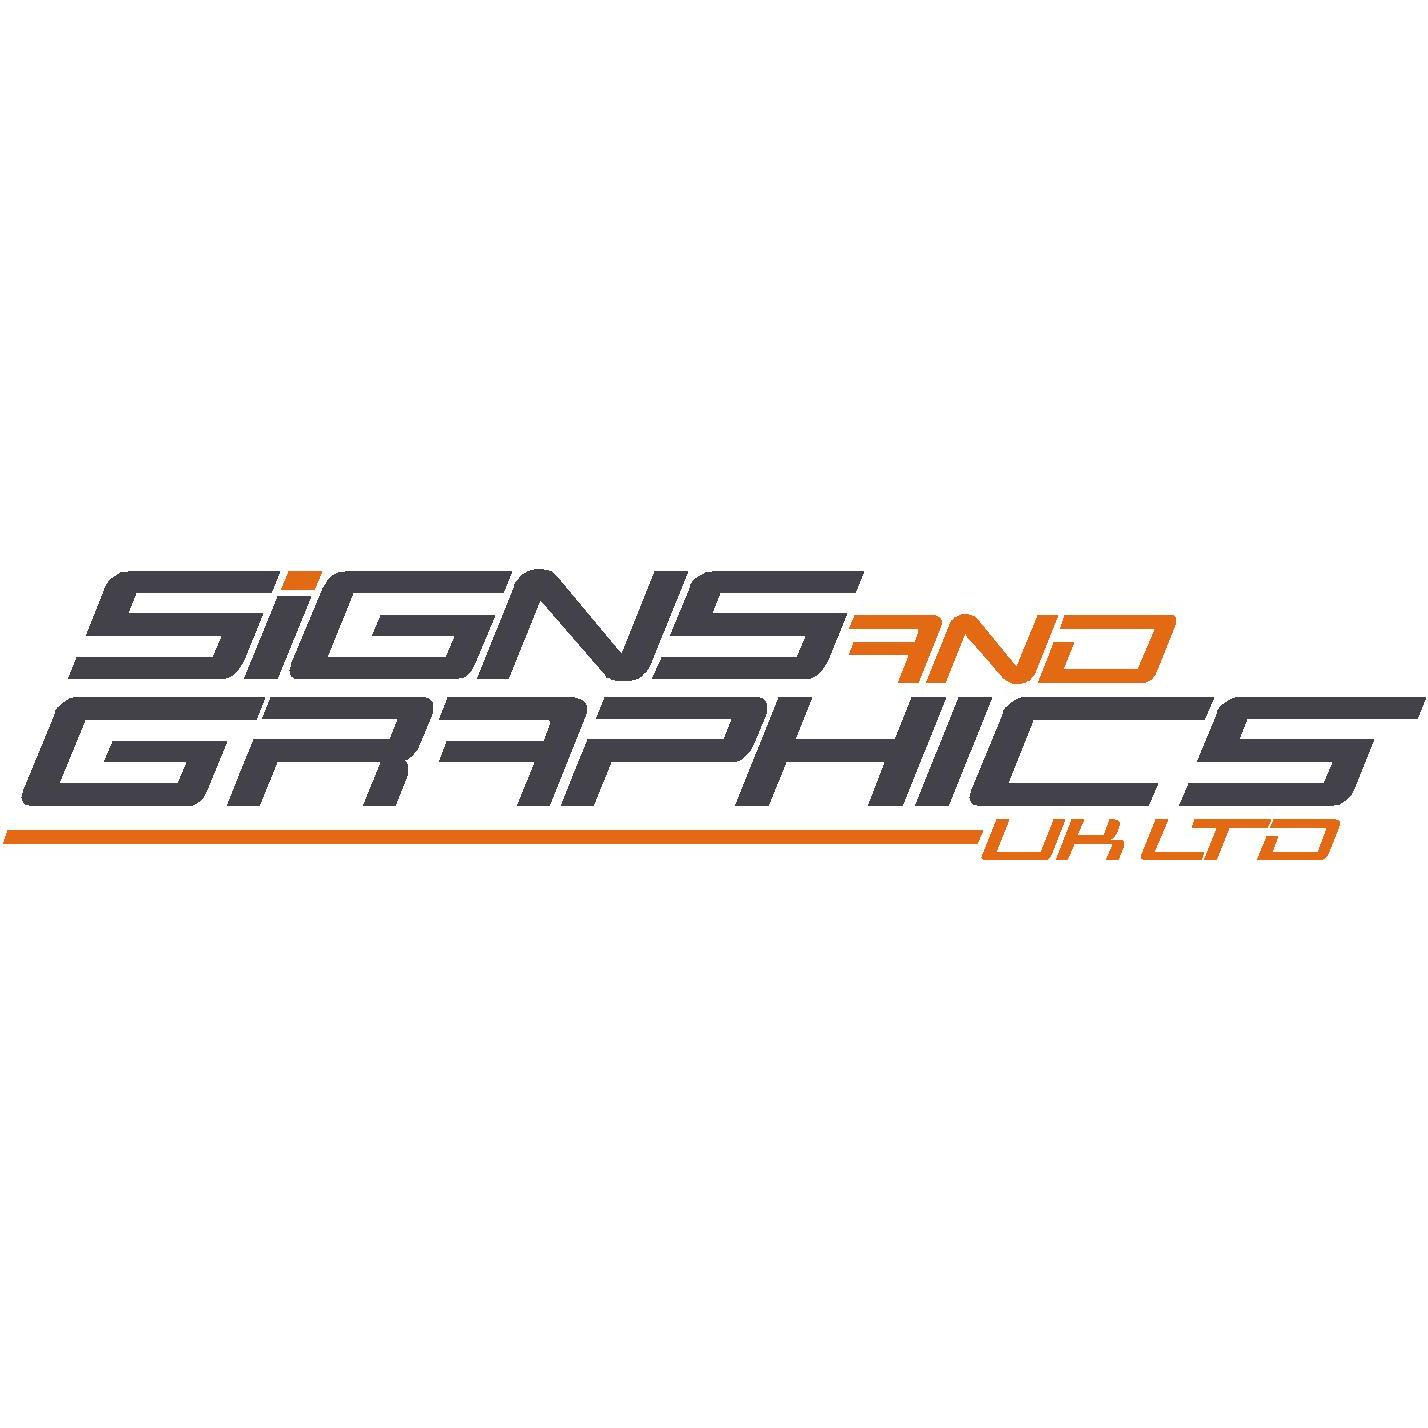 Signs & Graphics (UK) Ltd - Hinckley, Leicestershire LE10 1YD - 01455 612706   ShowMeLocal.com